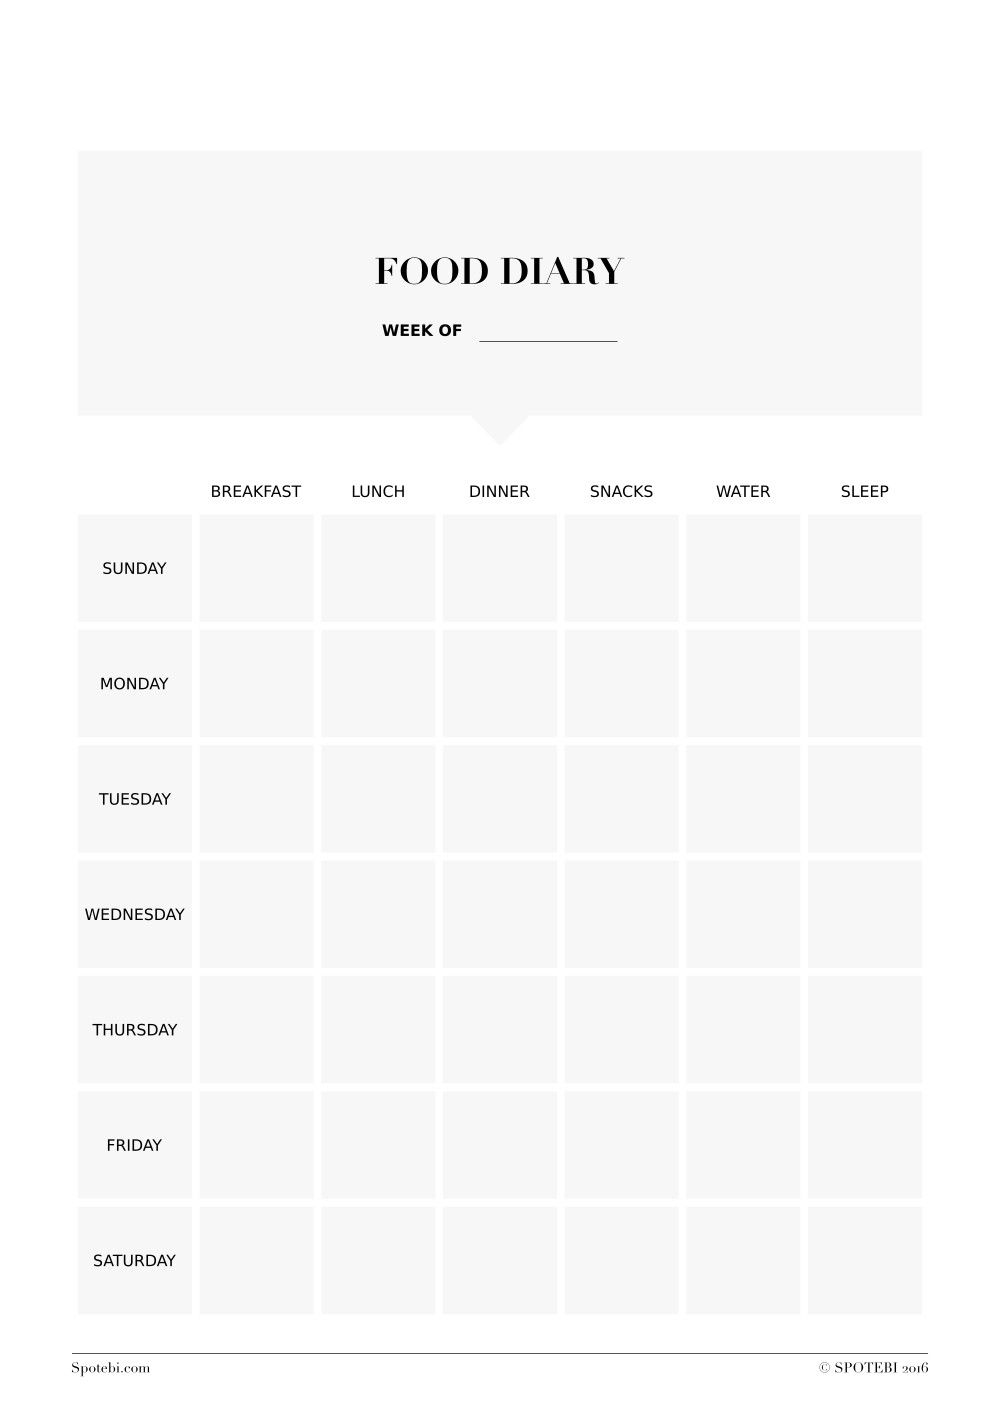 Print Our Free Food Diary Template Track Your Eating Habits Thoughts Feelings And Symptoms Make Healthy Changeove Toward Fitness Goals